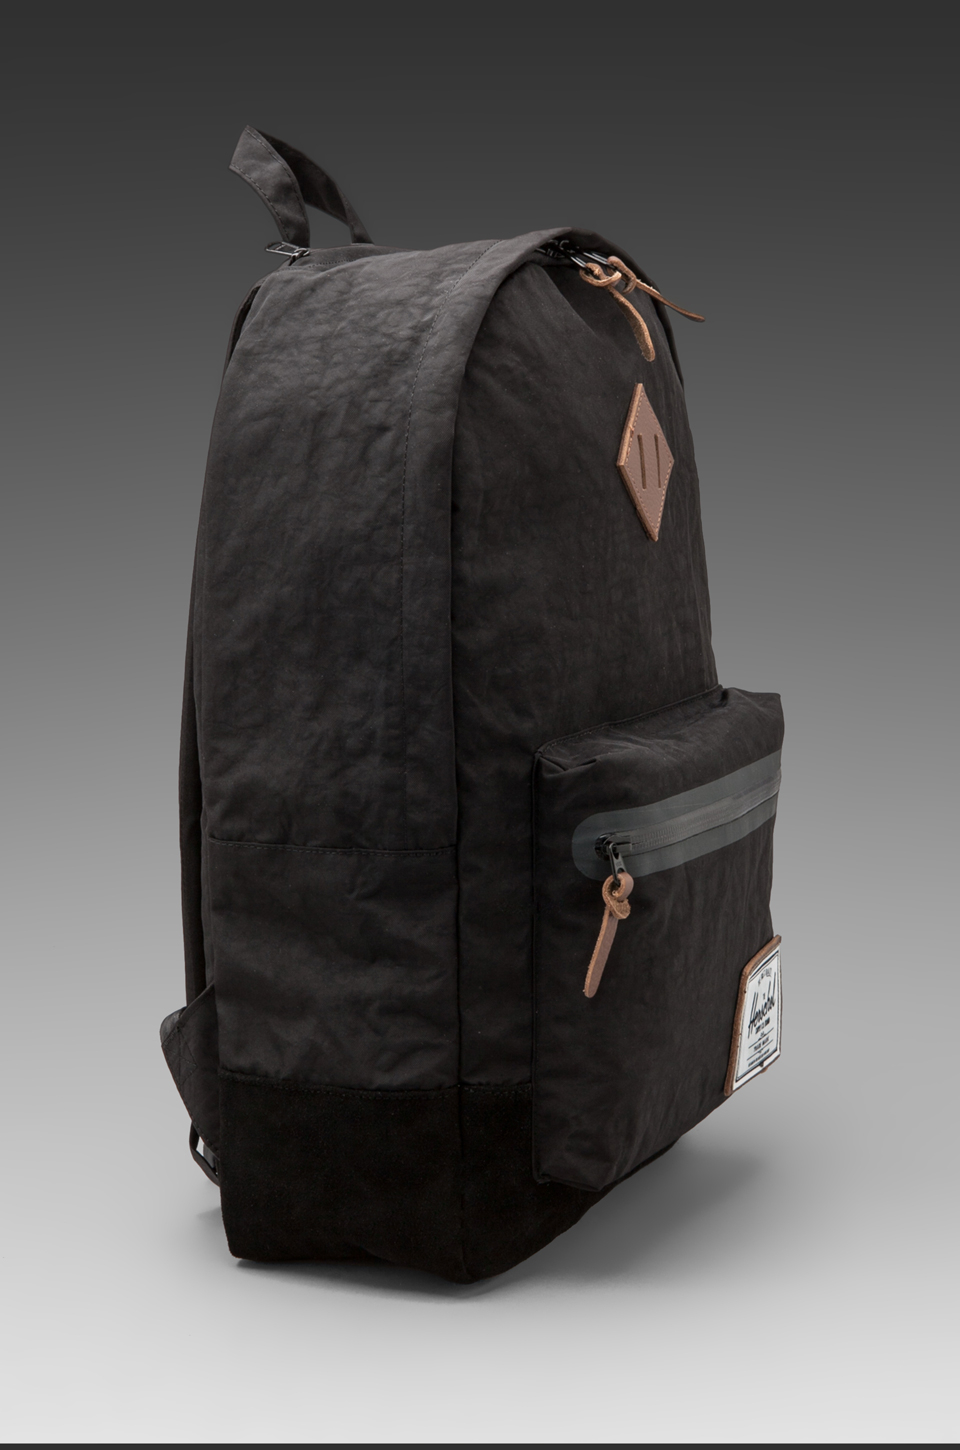 7c6bfe53c1f Lyst - Herschel Supply Co. Bad Hills Collection Heritage Plus ...